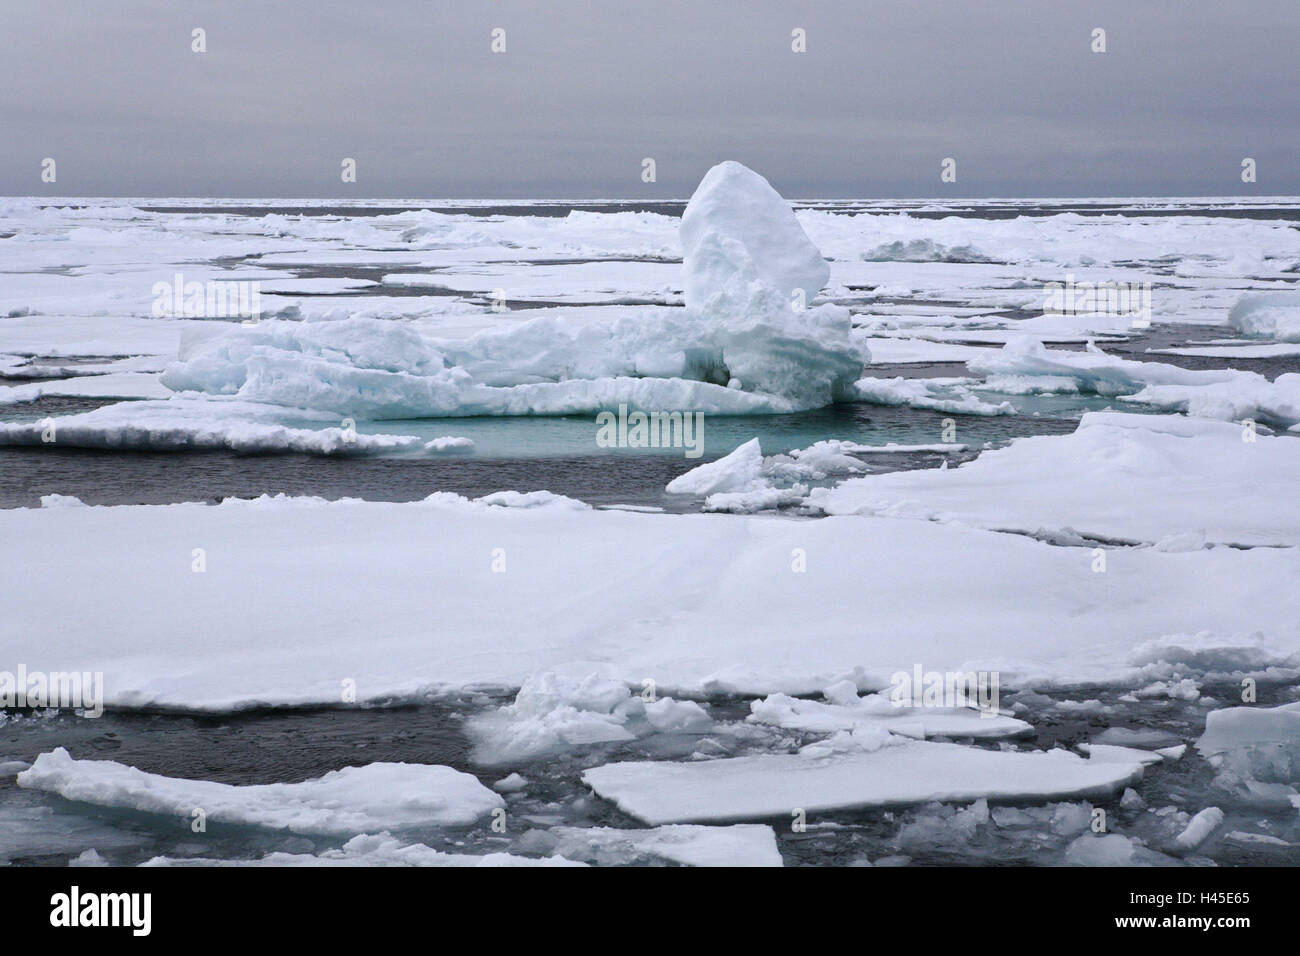 Arctic ocean, pack ice, for editorial use only, expedition, Alfred-Wegener-Institut, polar research, - Stock Image